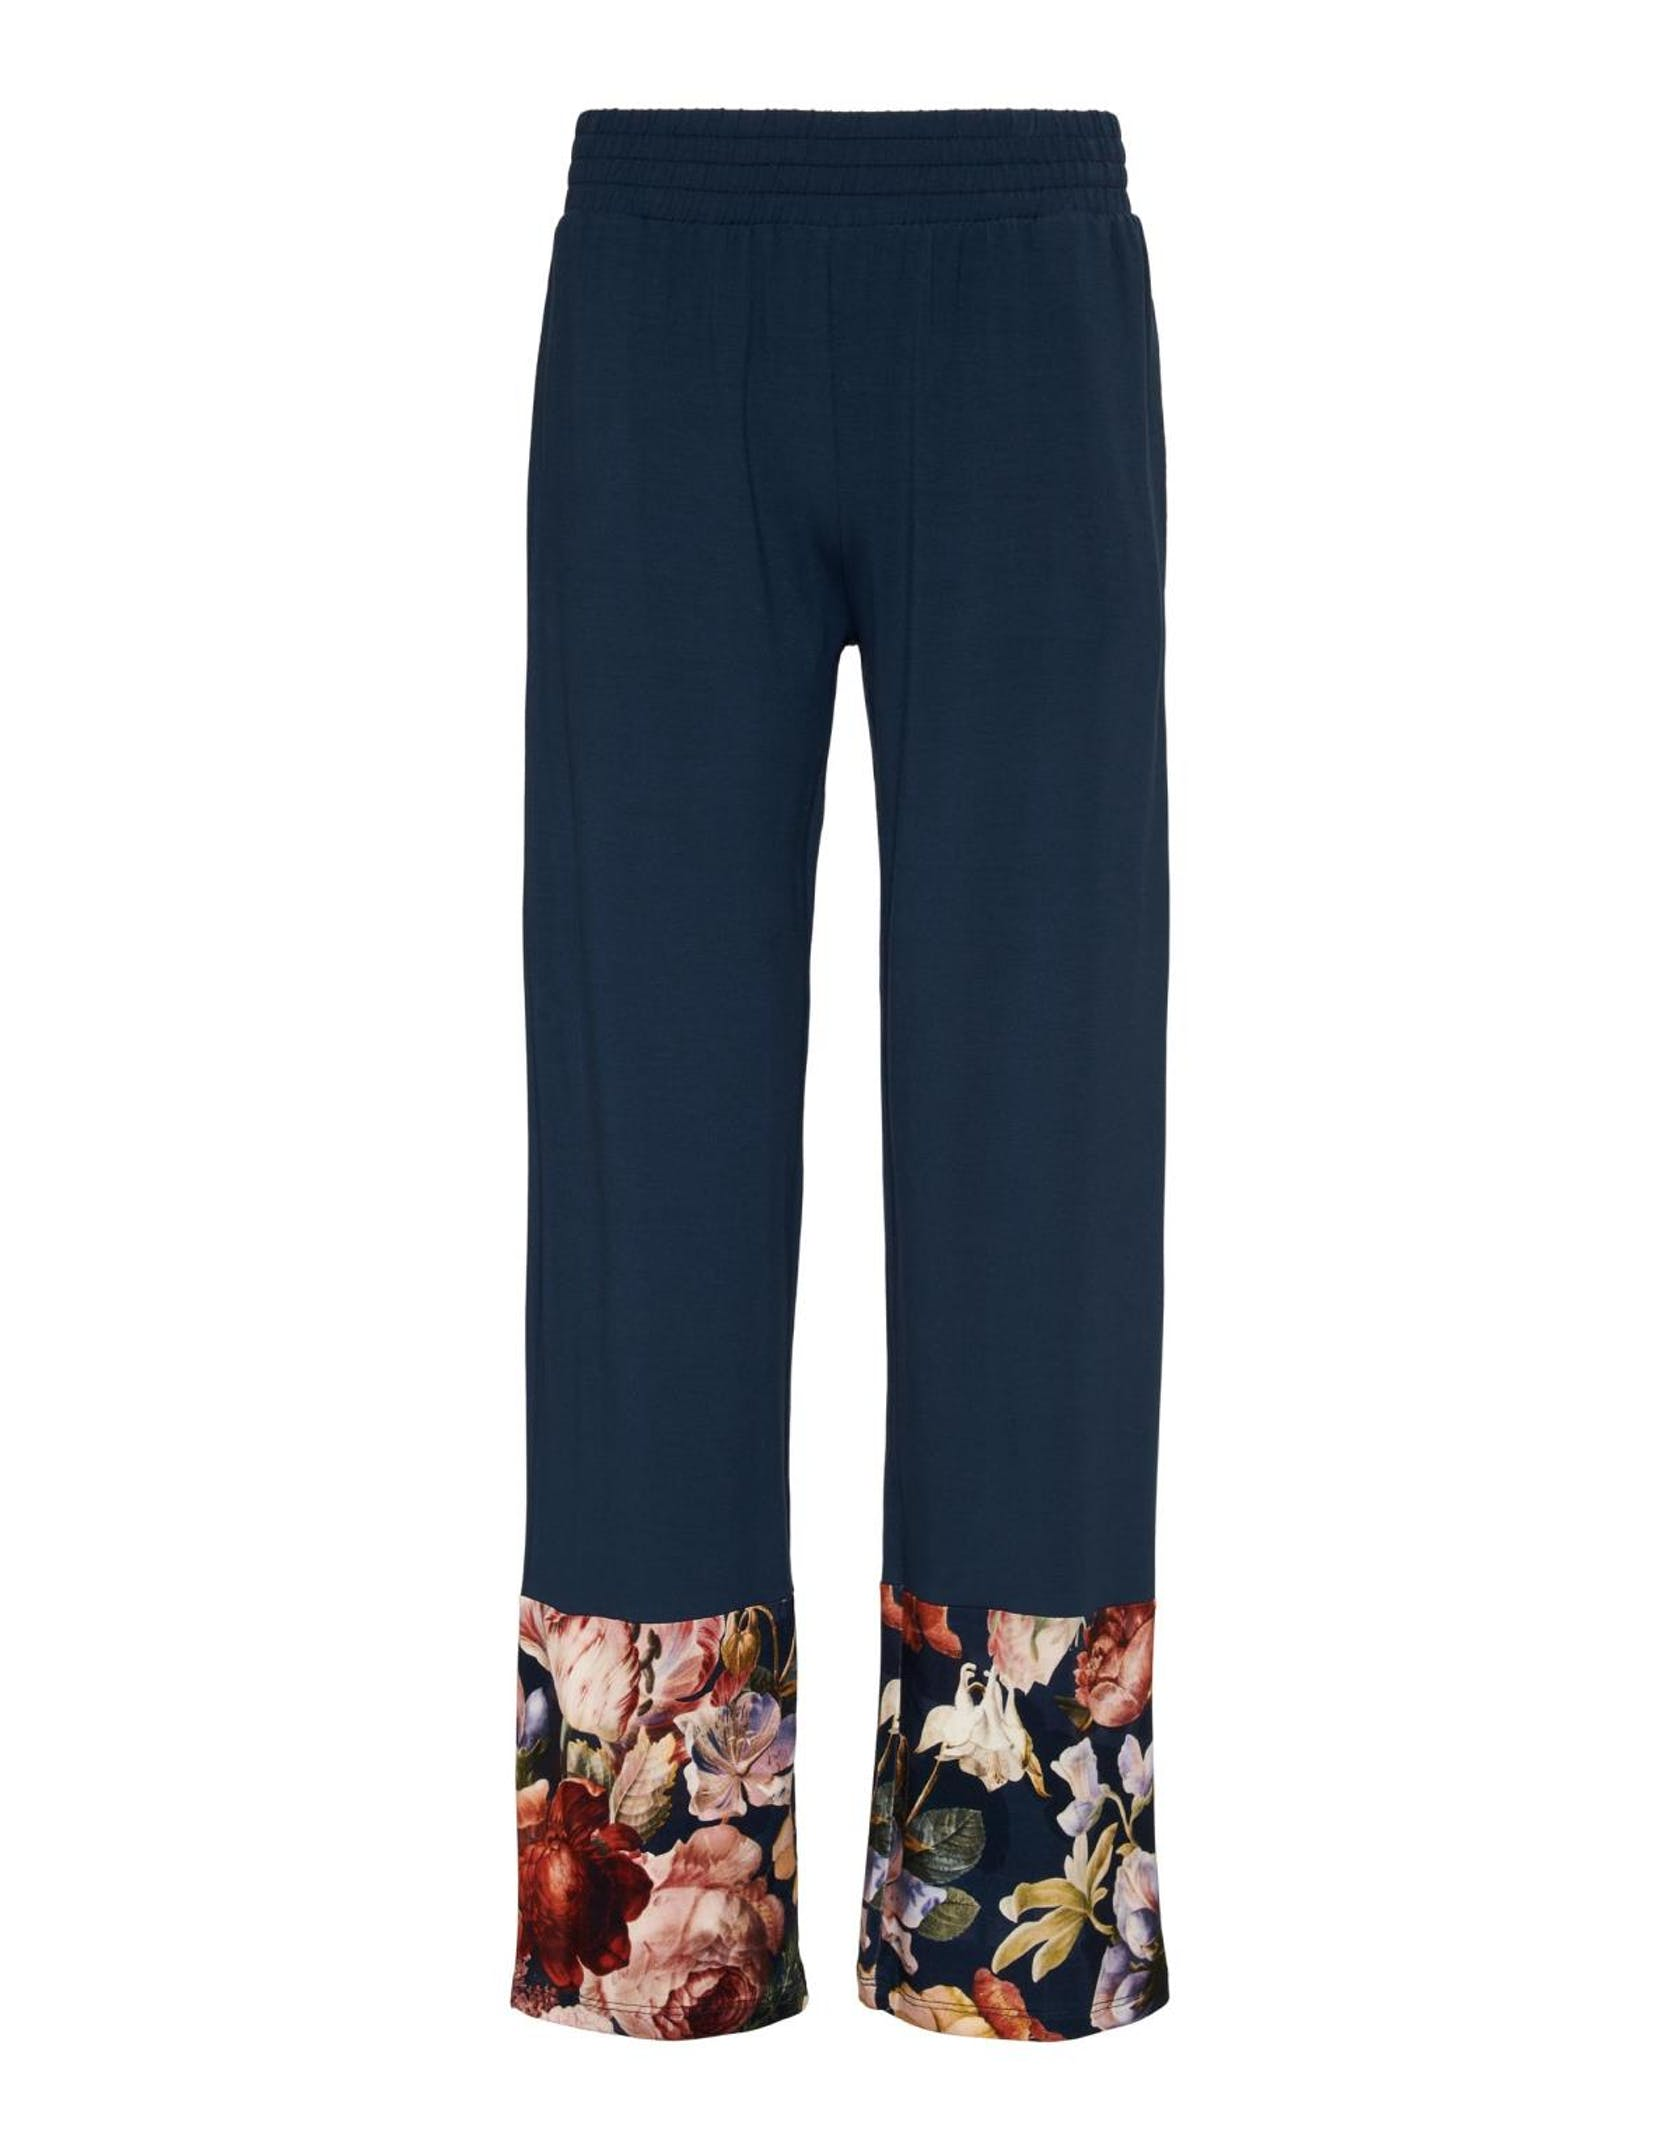 ESSENZA Naomi Anneclaire Indigo blue Trousers Long M